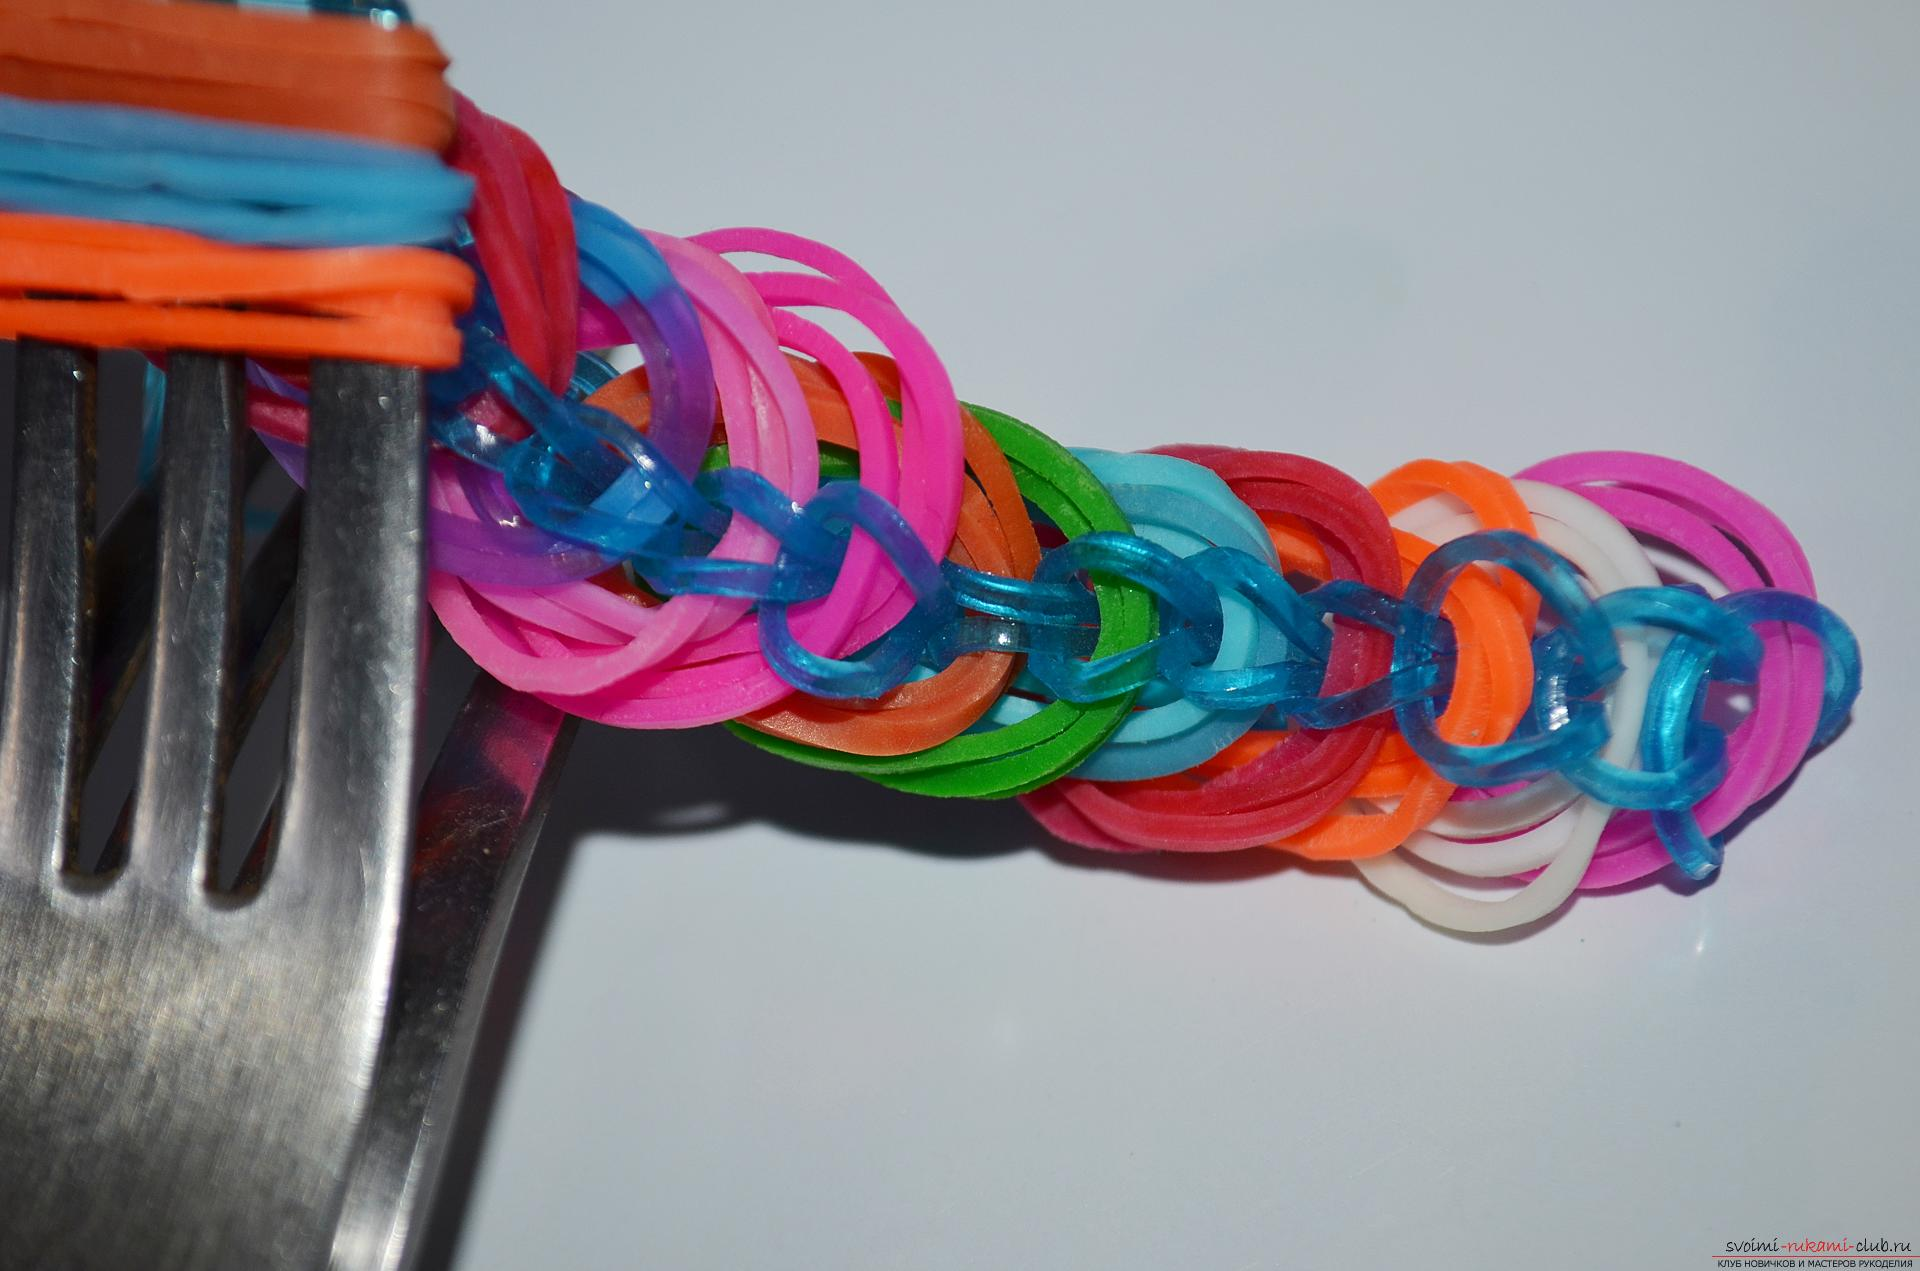 Photo for a lesson on braiding from a rubber band of a bracelet